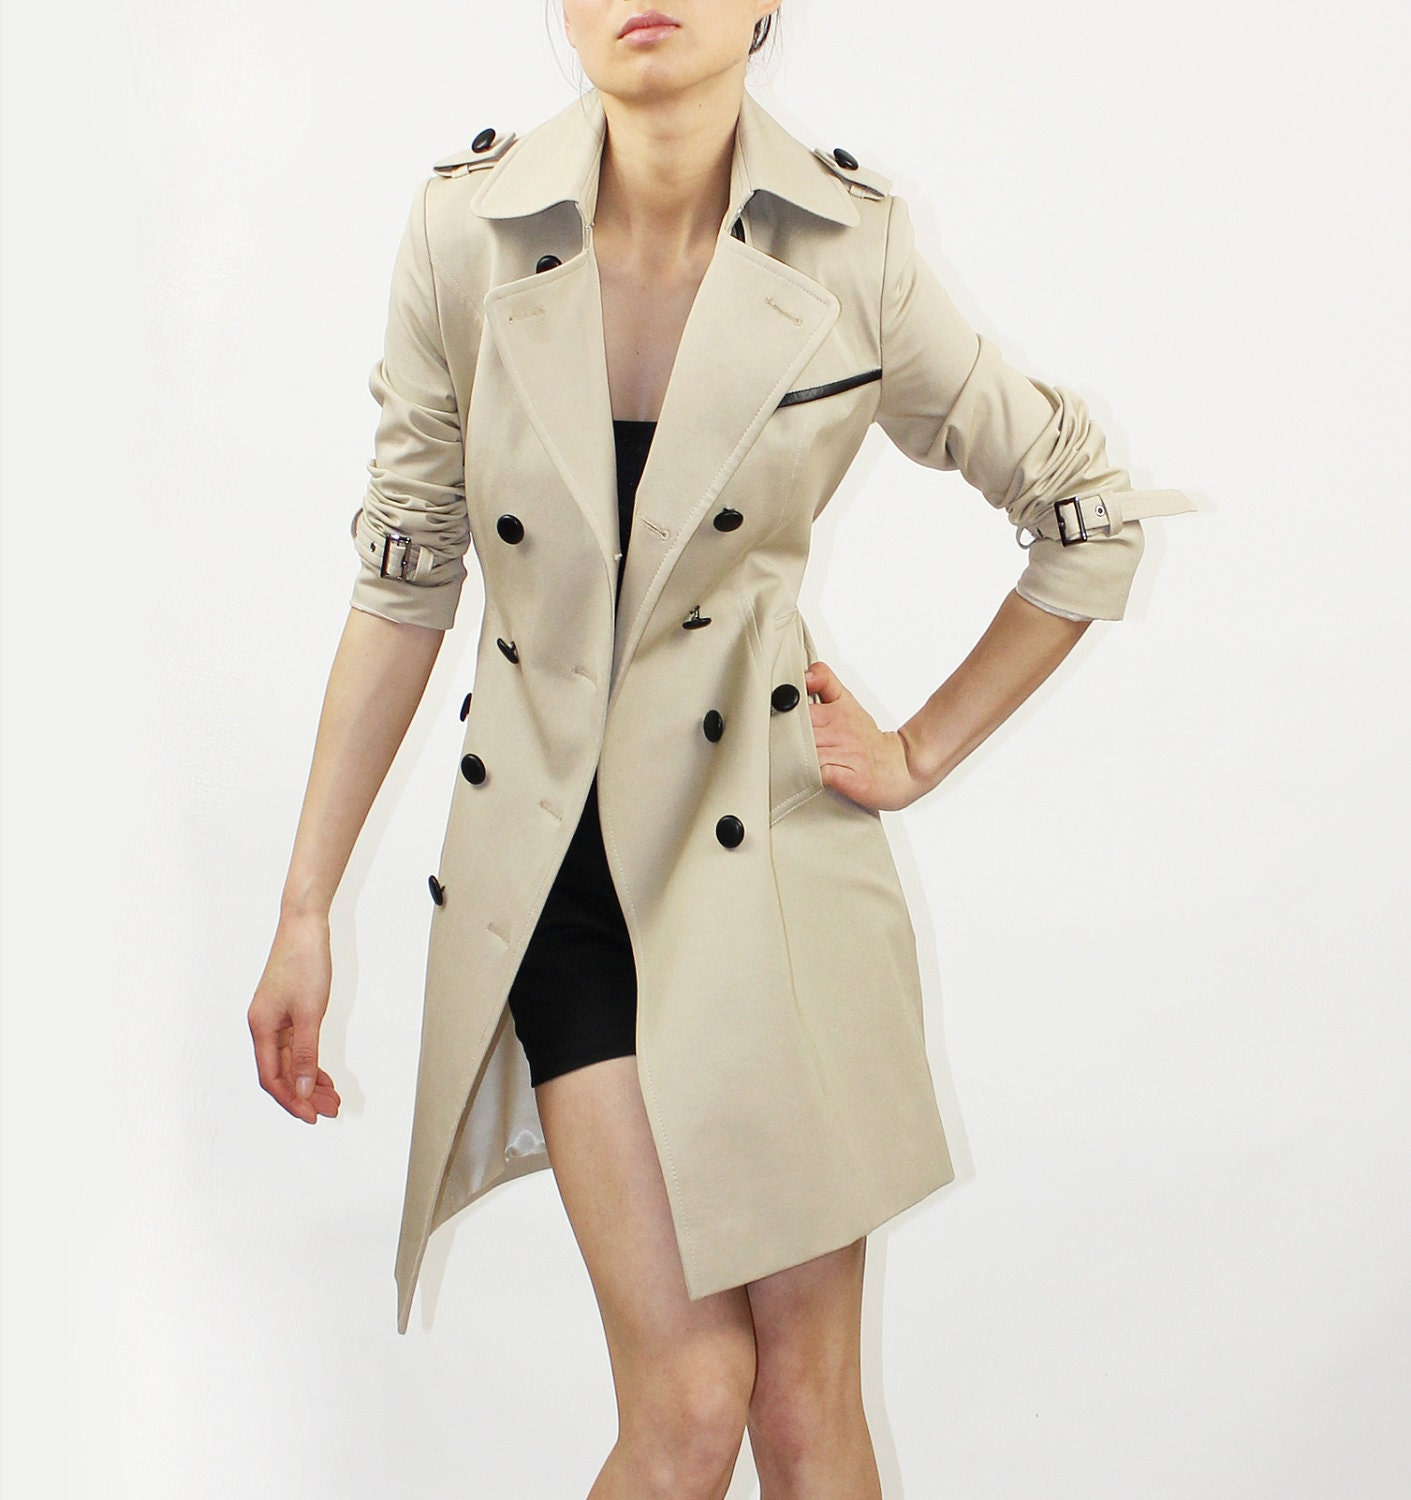 Beige trench coat with black leather